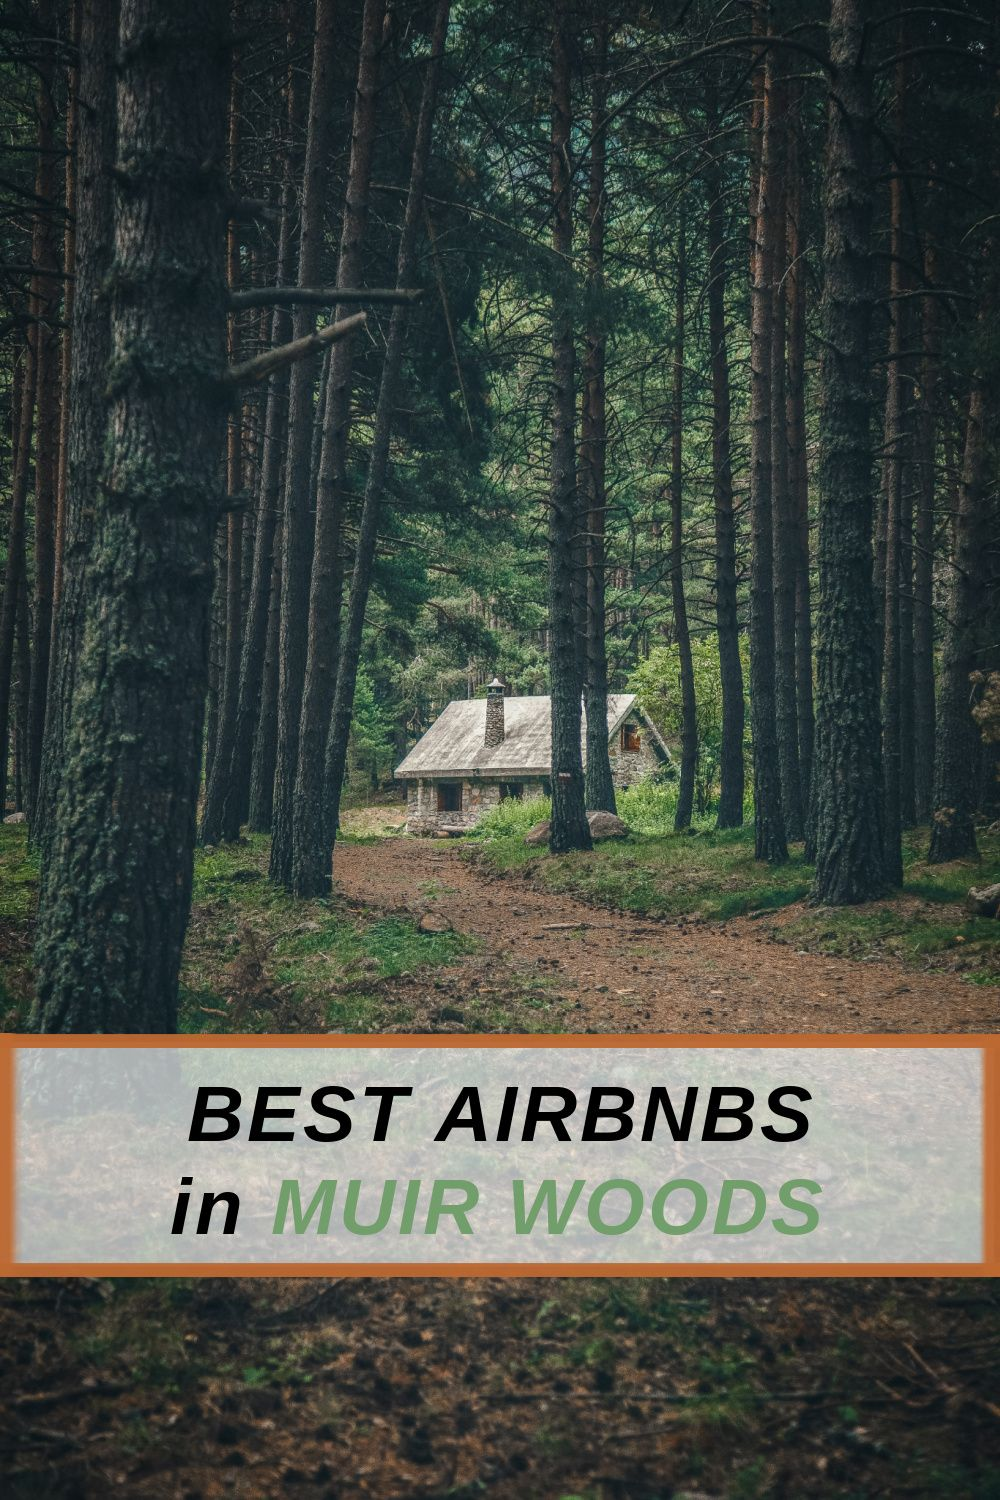 9 Coolest Airbnbs near Muir Woods, California: The